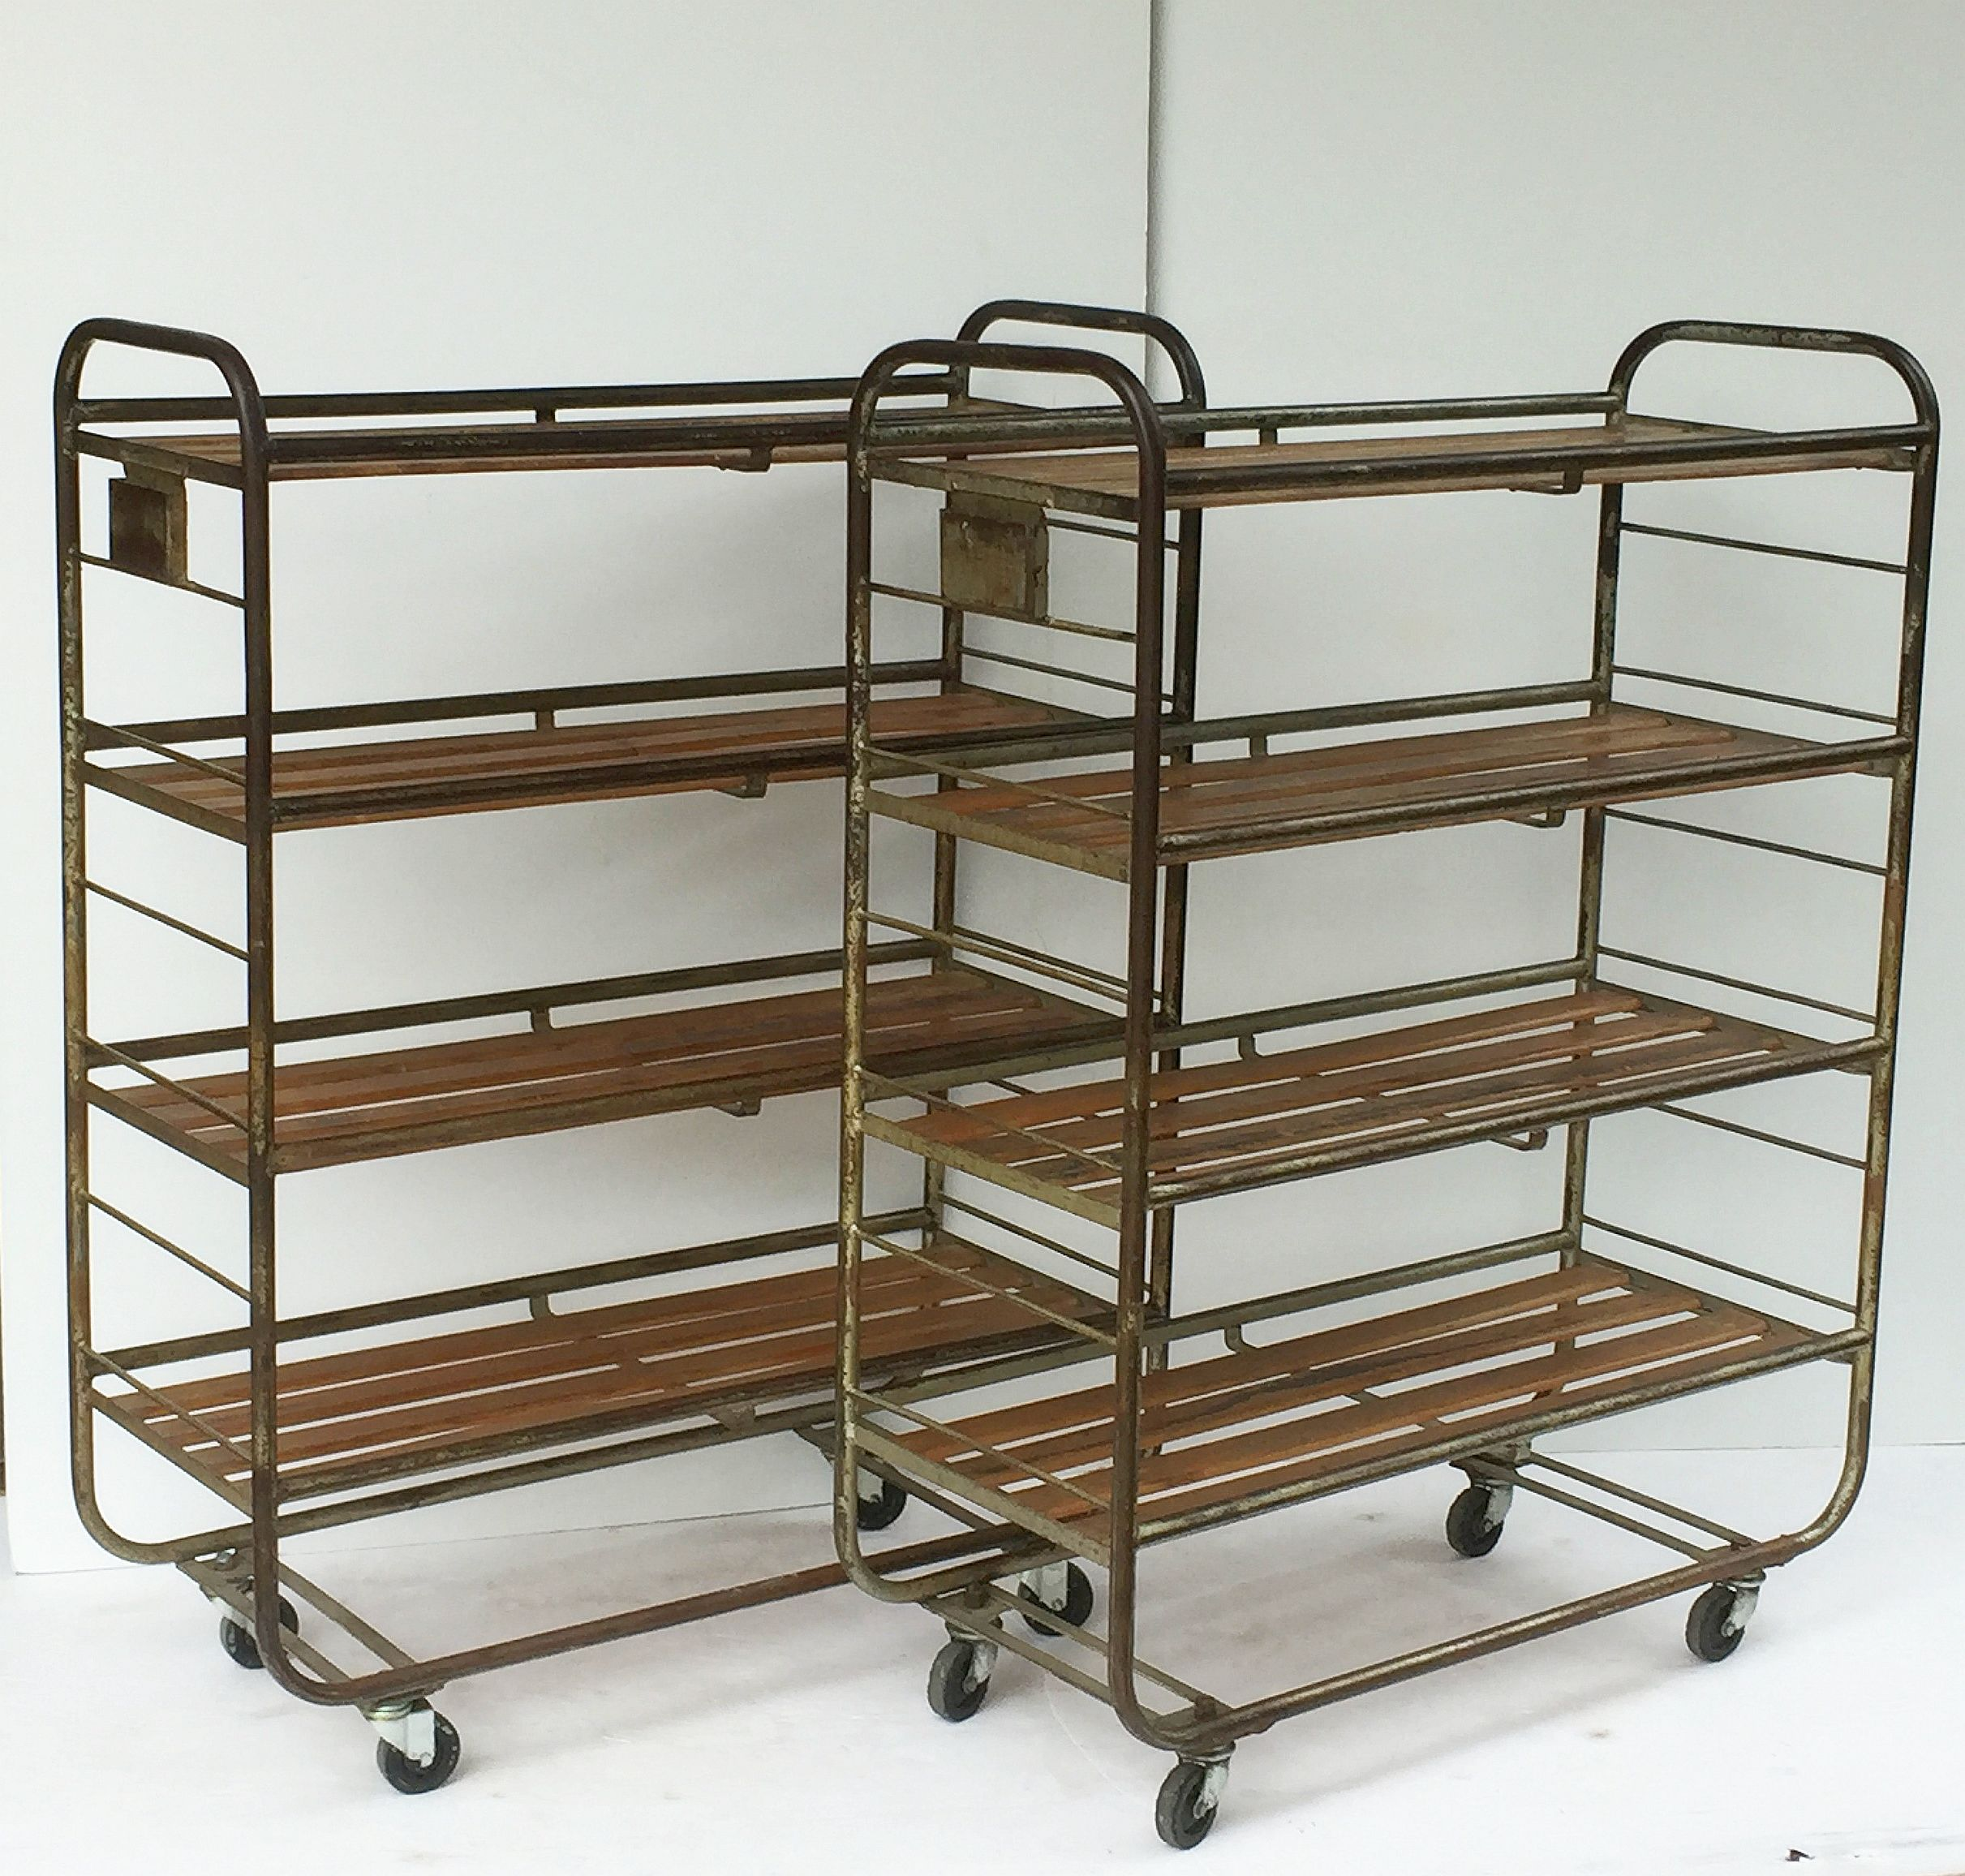 steel french f pair one collectibles more rolling sale for racks and of at org furniture id rack wood industrial available